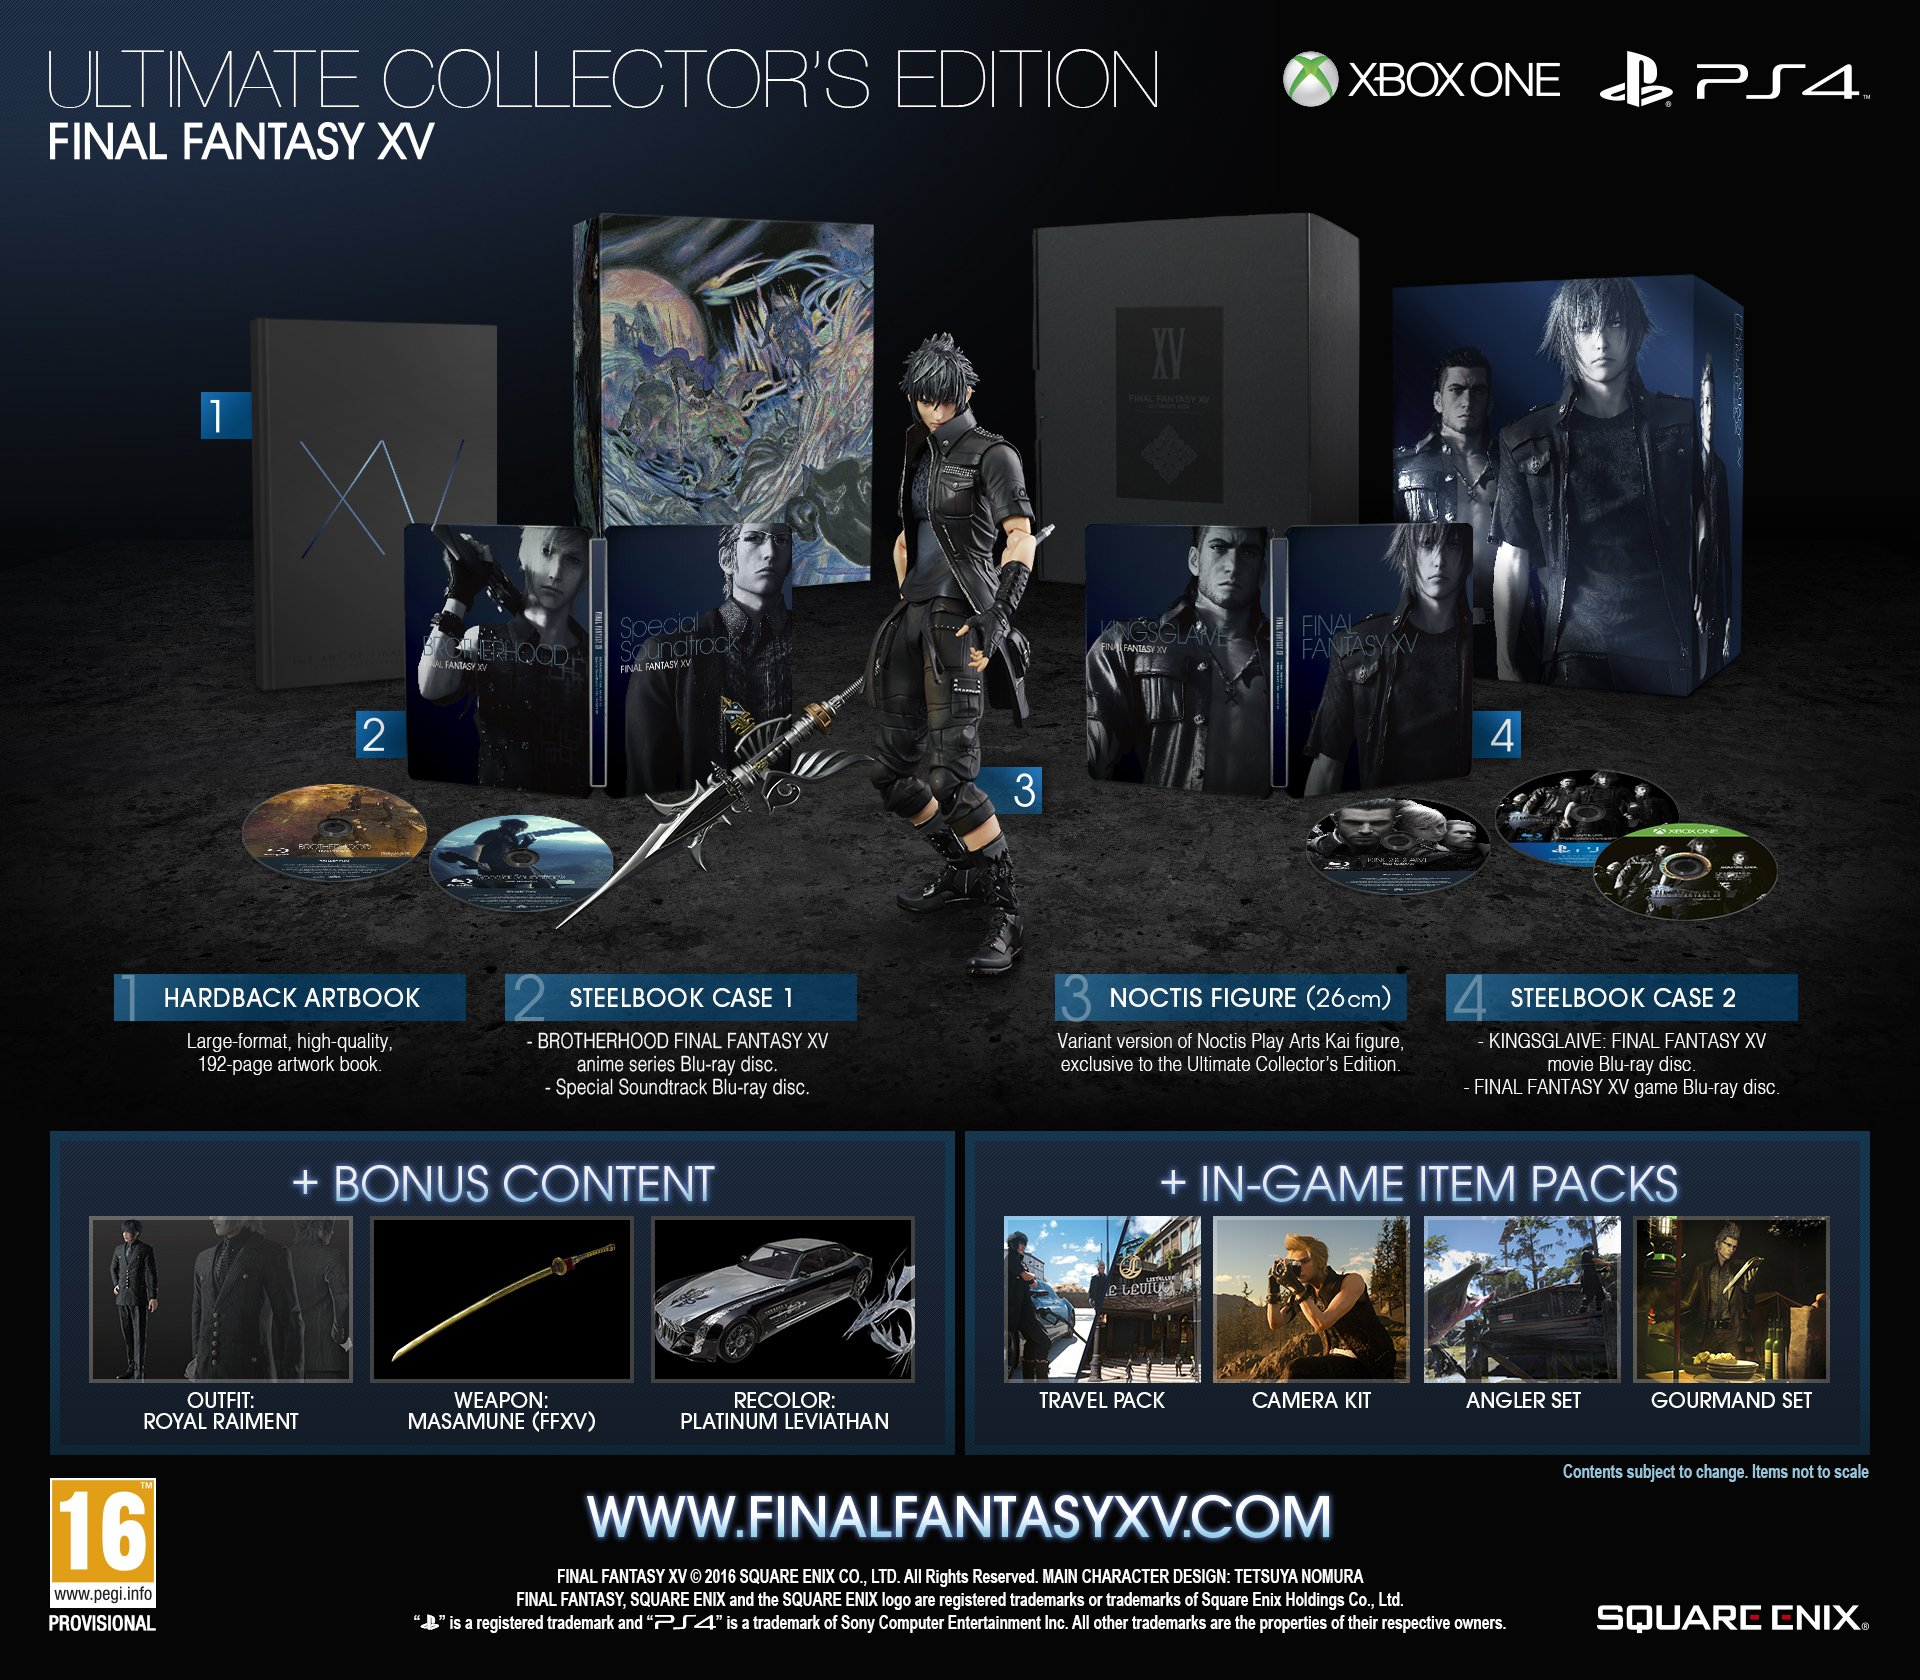 Square Enix Producing More Final Fantasy XV Ultimate Collector's Editions 1